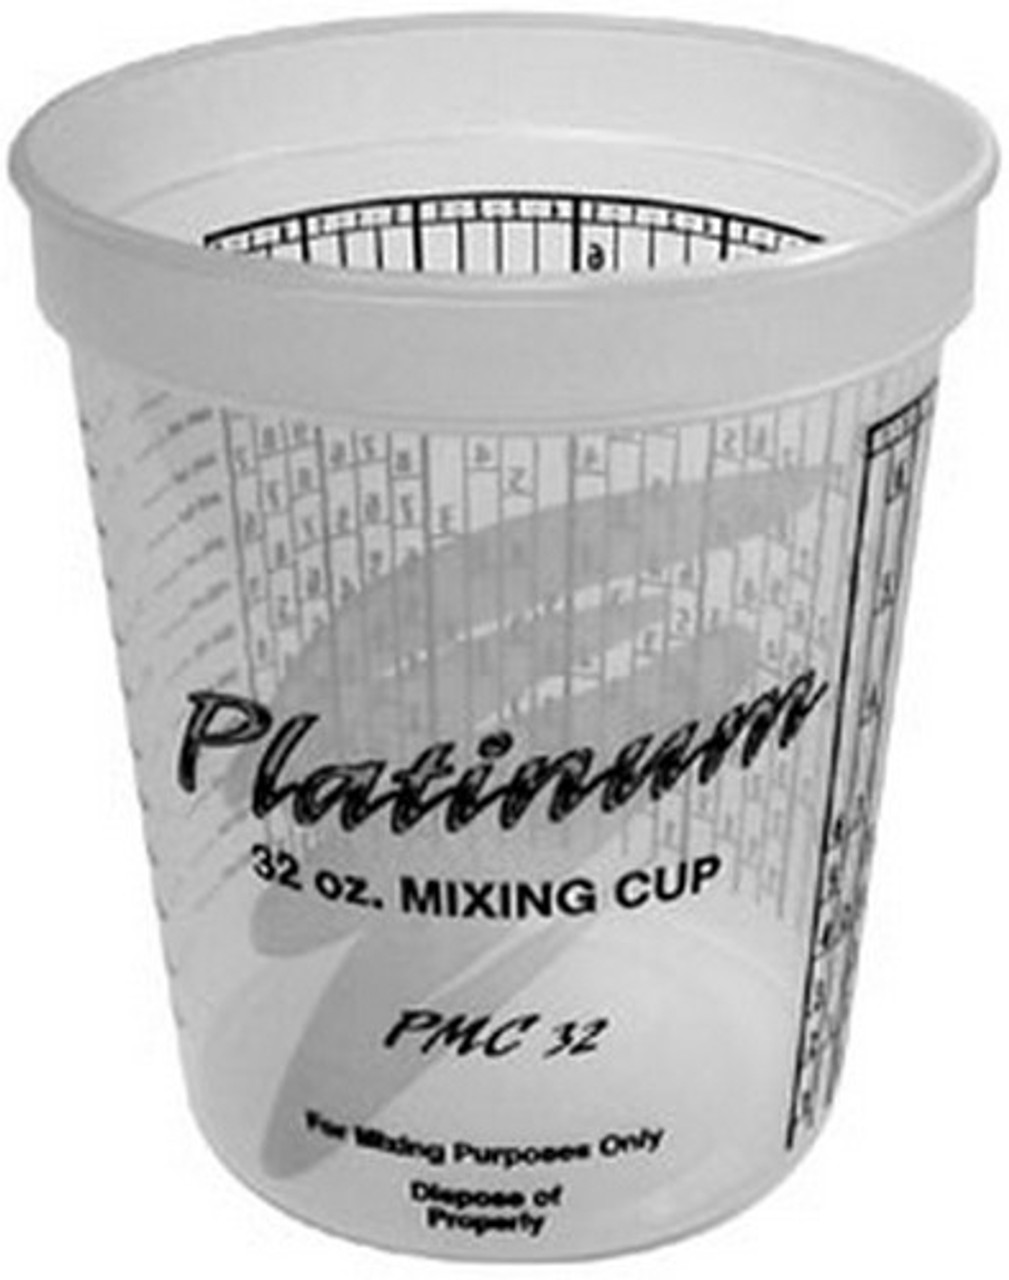 E-Z Mix PMC32 Platinum Mixing Cups with PPG Ratios, 1-Quart